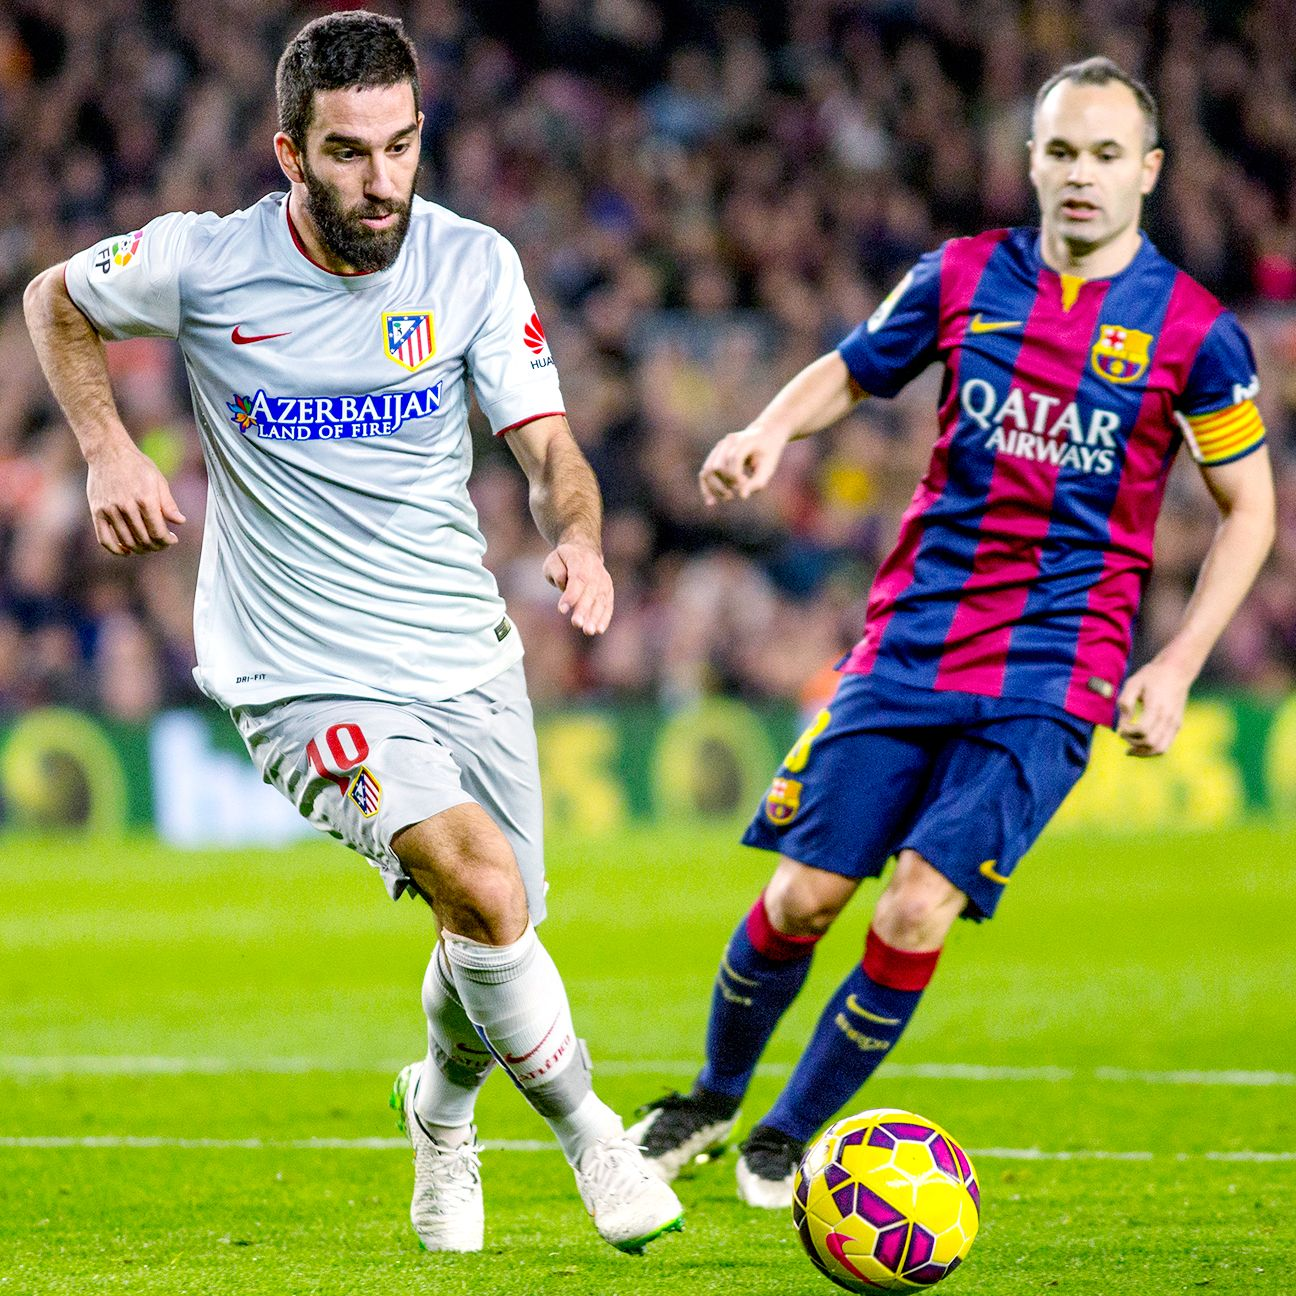 After spending the previous four seasons playing against Andres Iniesta, Arda Turan could well assume the Barcelona midfielder's role at the Camp Nou in the near future.